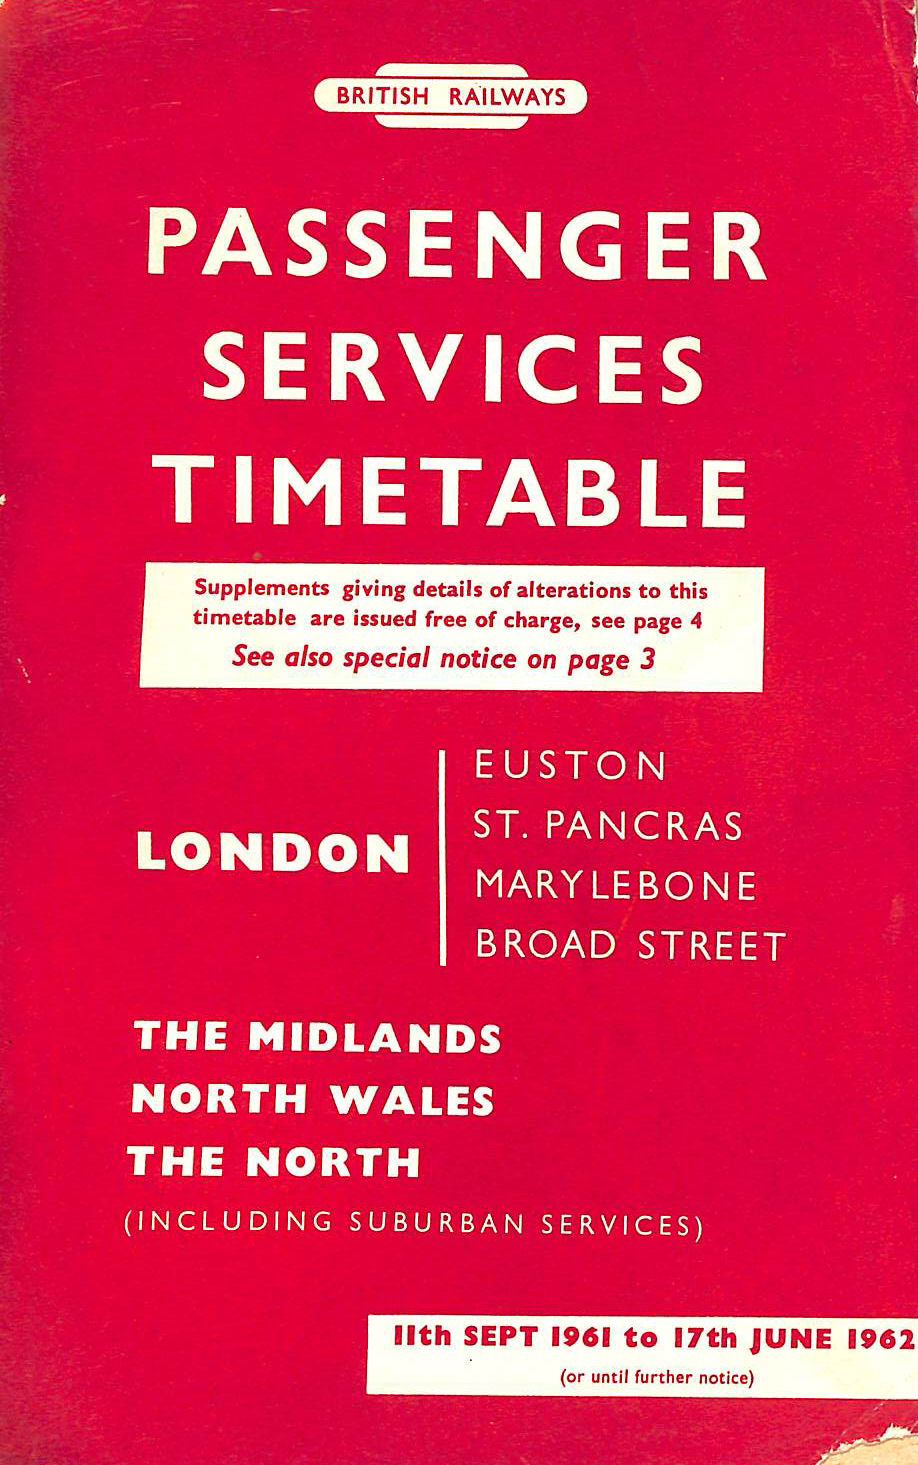 Image for Passenger Services Timetable London Midland Region, 11th Sept 1961 to 17th June 1962